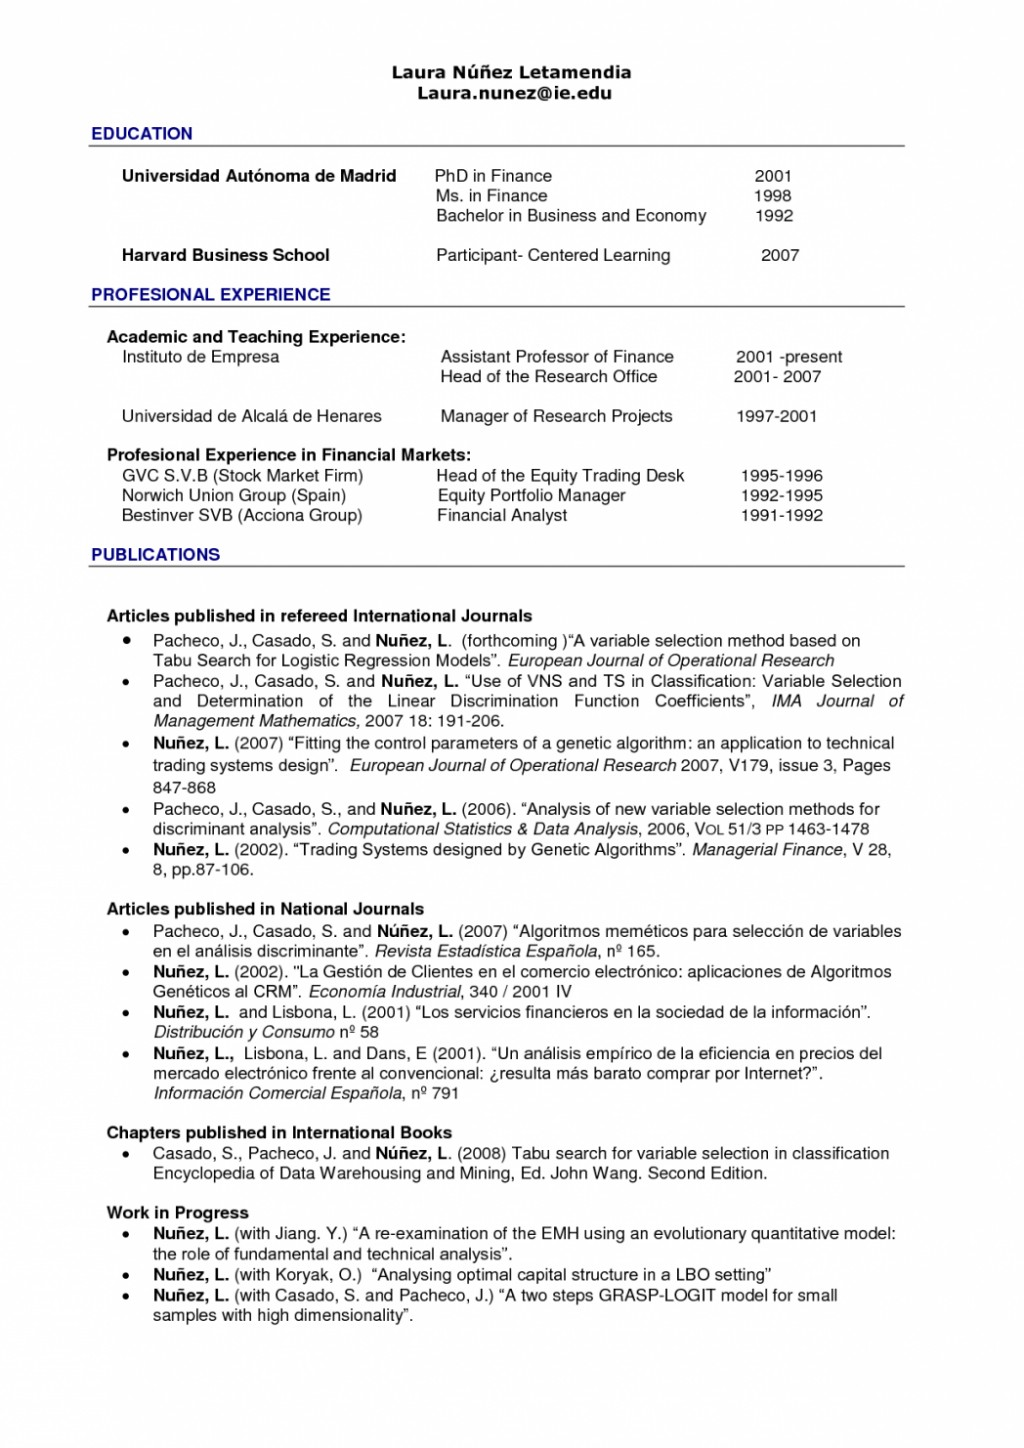 014 Cosy Harvard Mba Resume Format For Hbs Essays Business School Essay Length Made Applic Questions Word Count Analysis Tips Books Limit 1048x1482 Awful Large